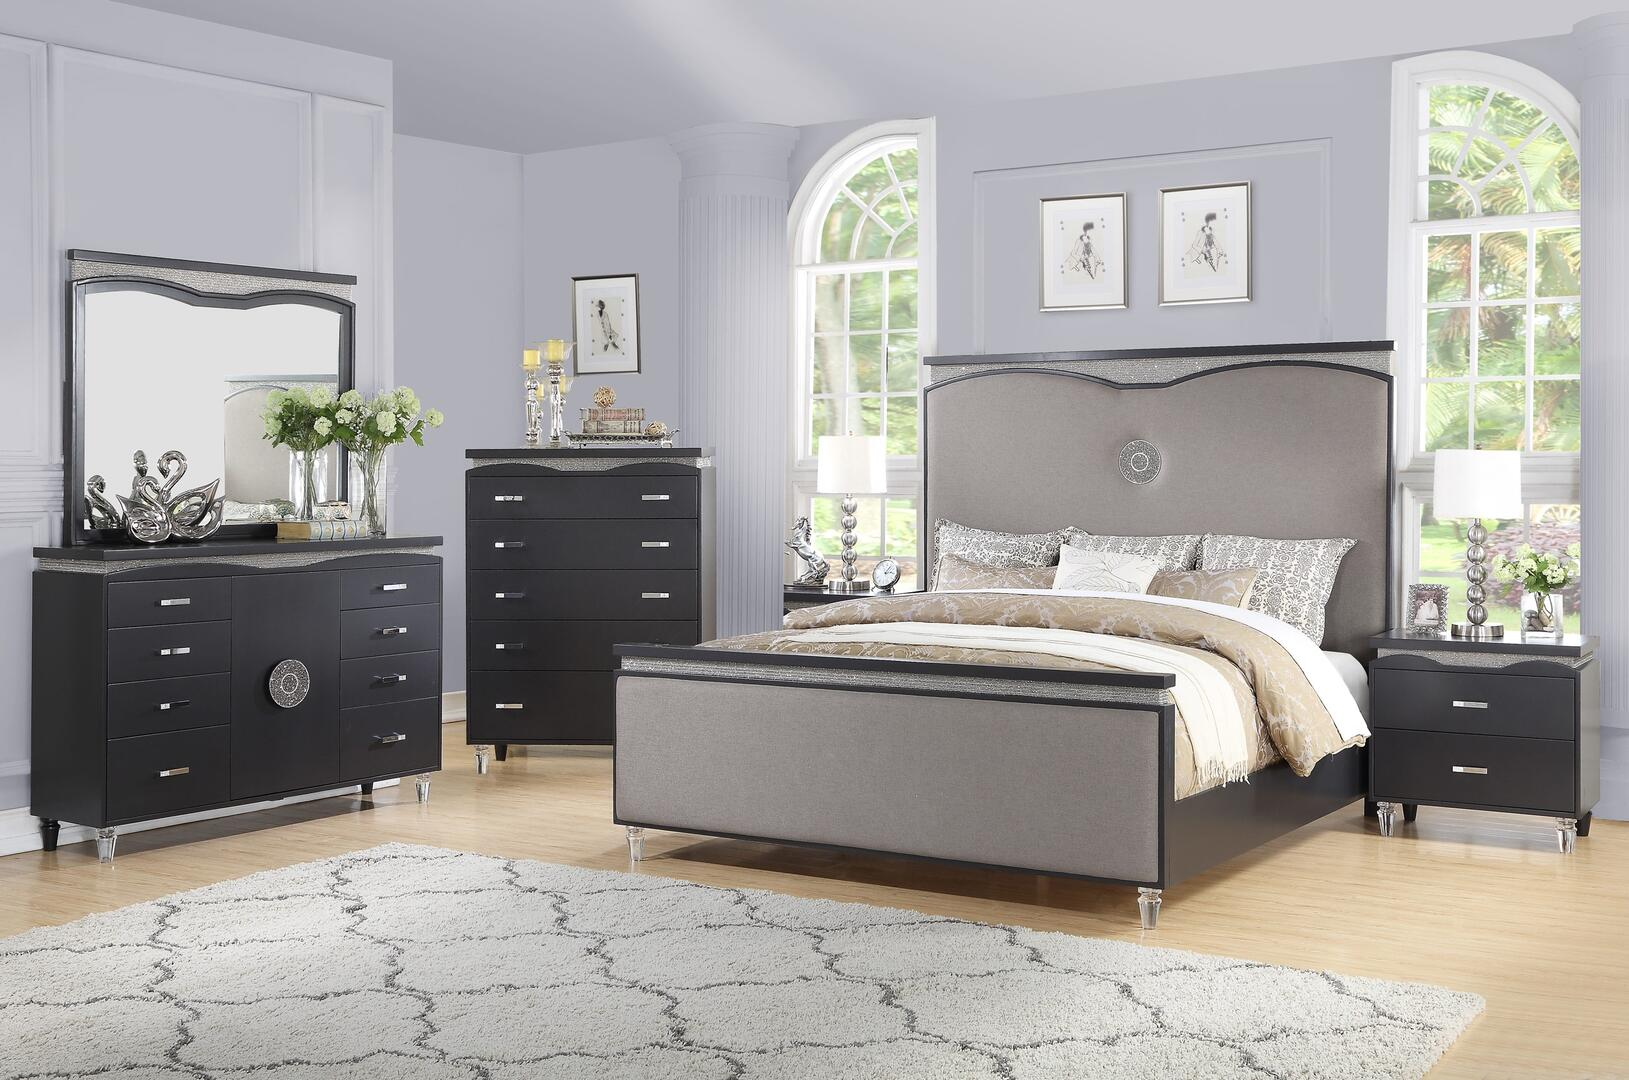 Cosmos Furniture Valencia 6 Piece Queen Size Bedroom Set